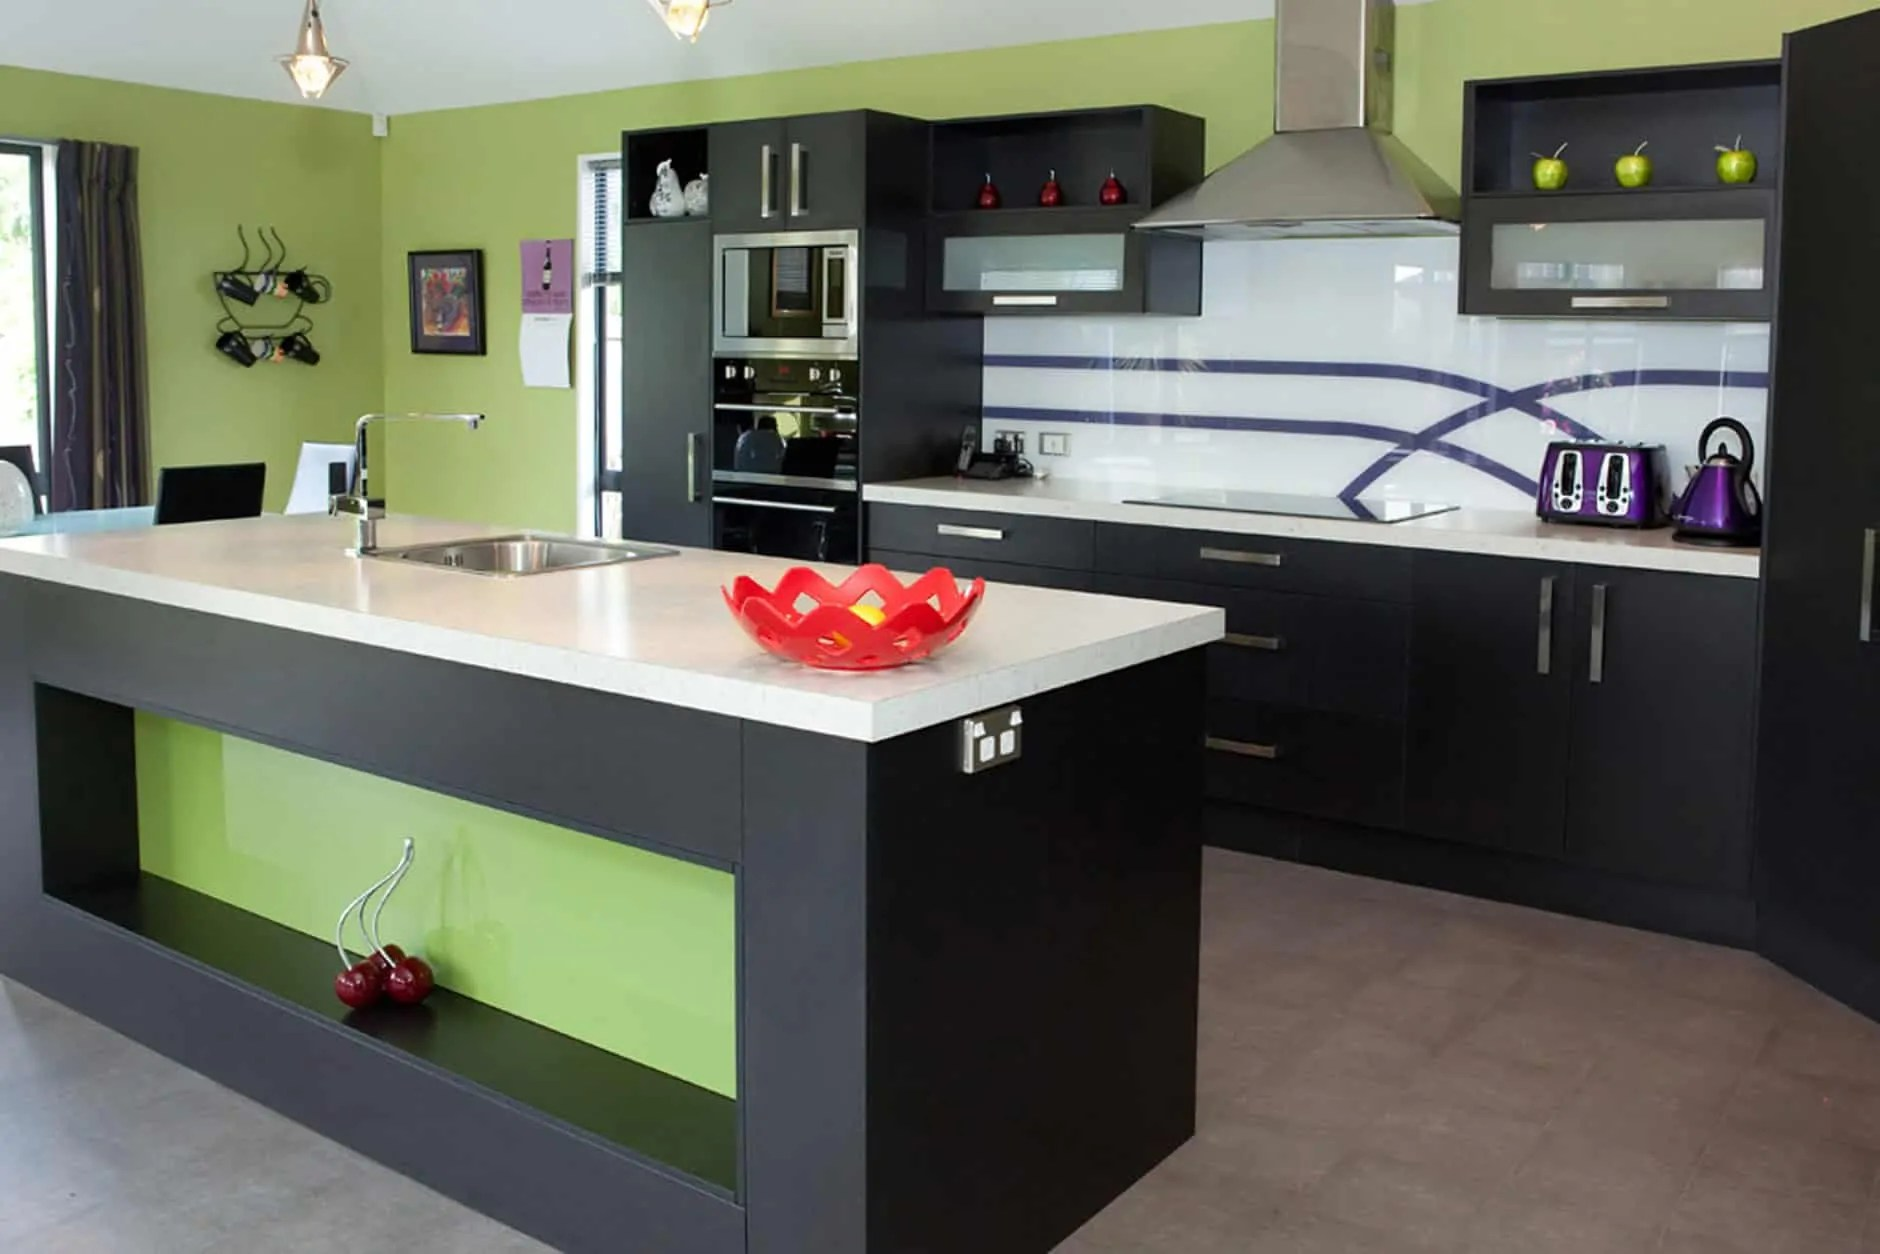 Kitchen Designs And Colors Images 15 Smart Kitchen Design Ideas Decoration Channel